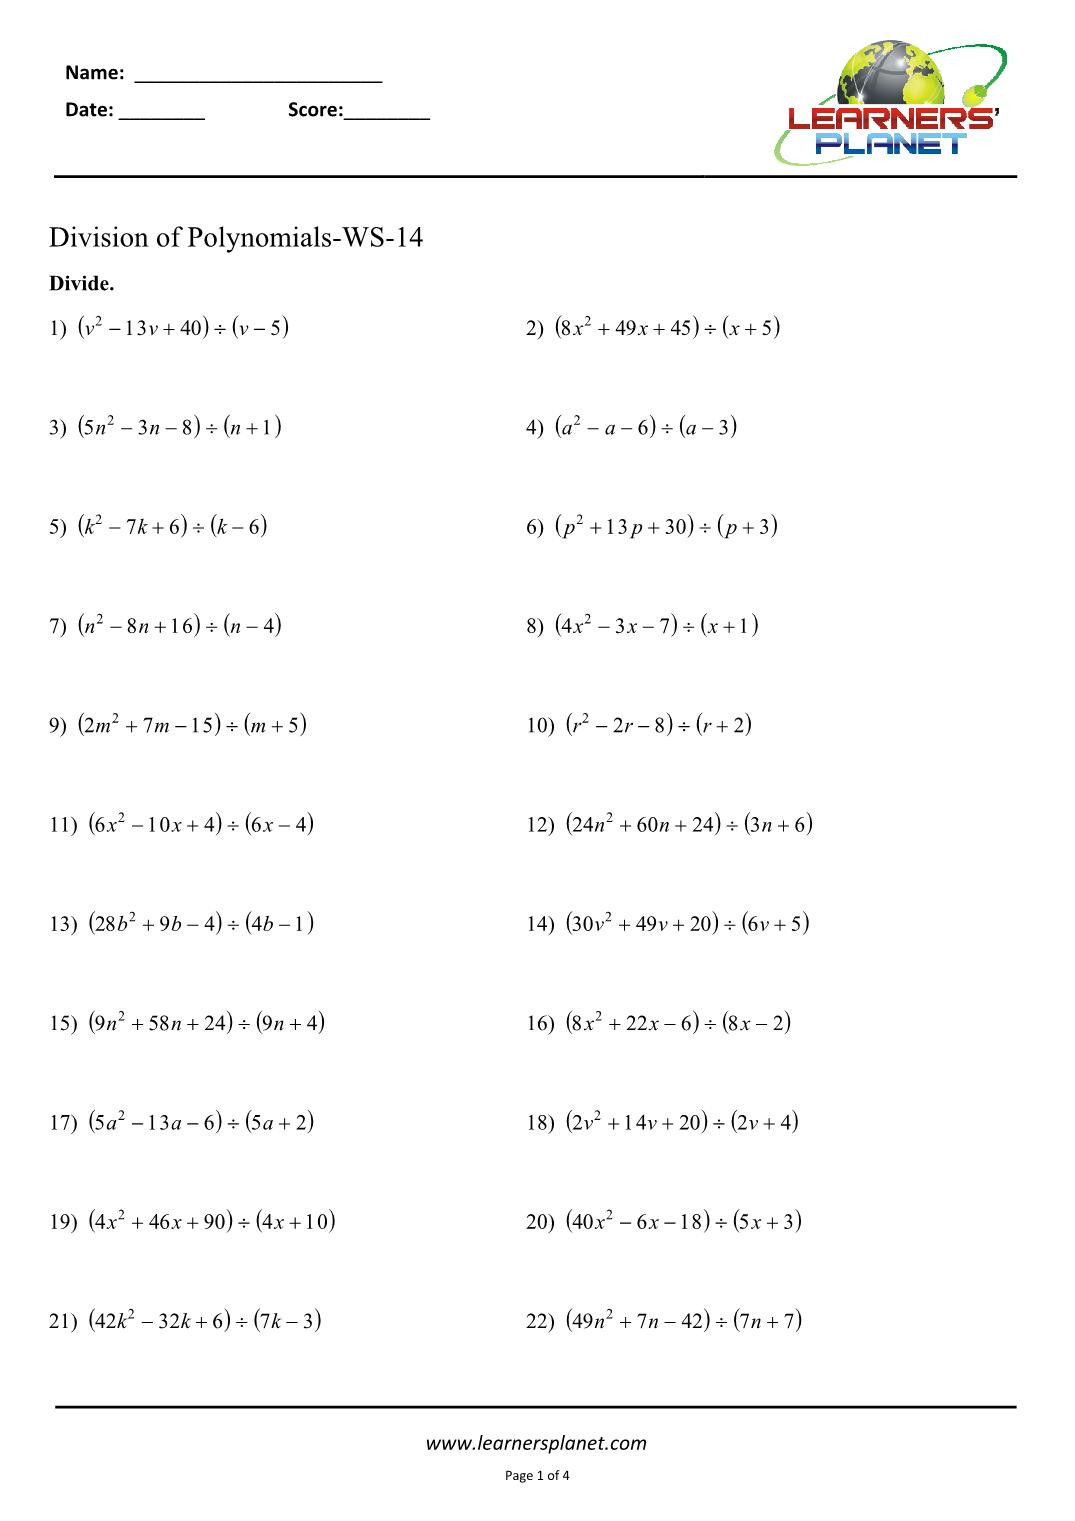 Dividing Polynomials Worksheet Answers Division Of Polynomials Class 8 Worksheets